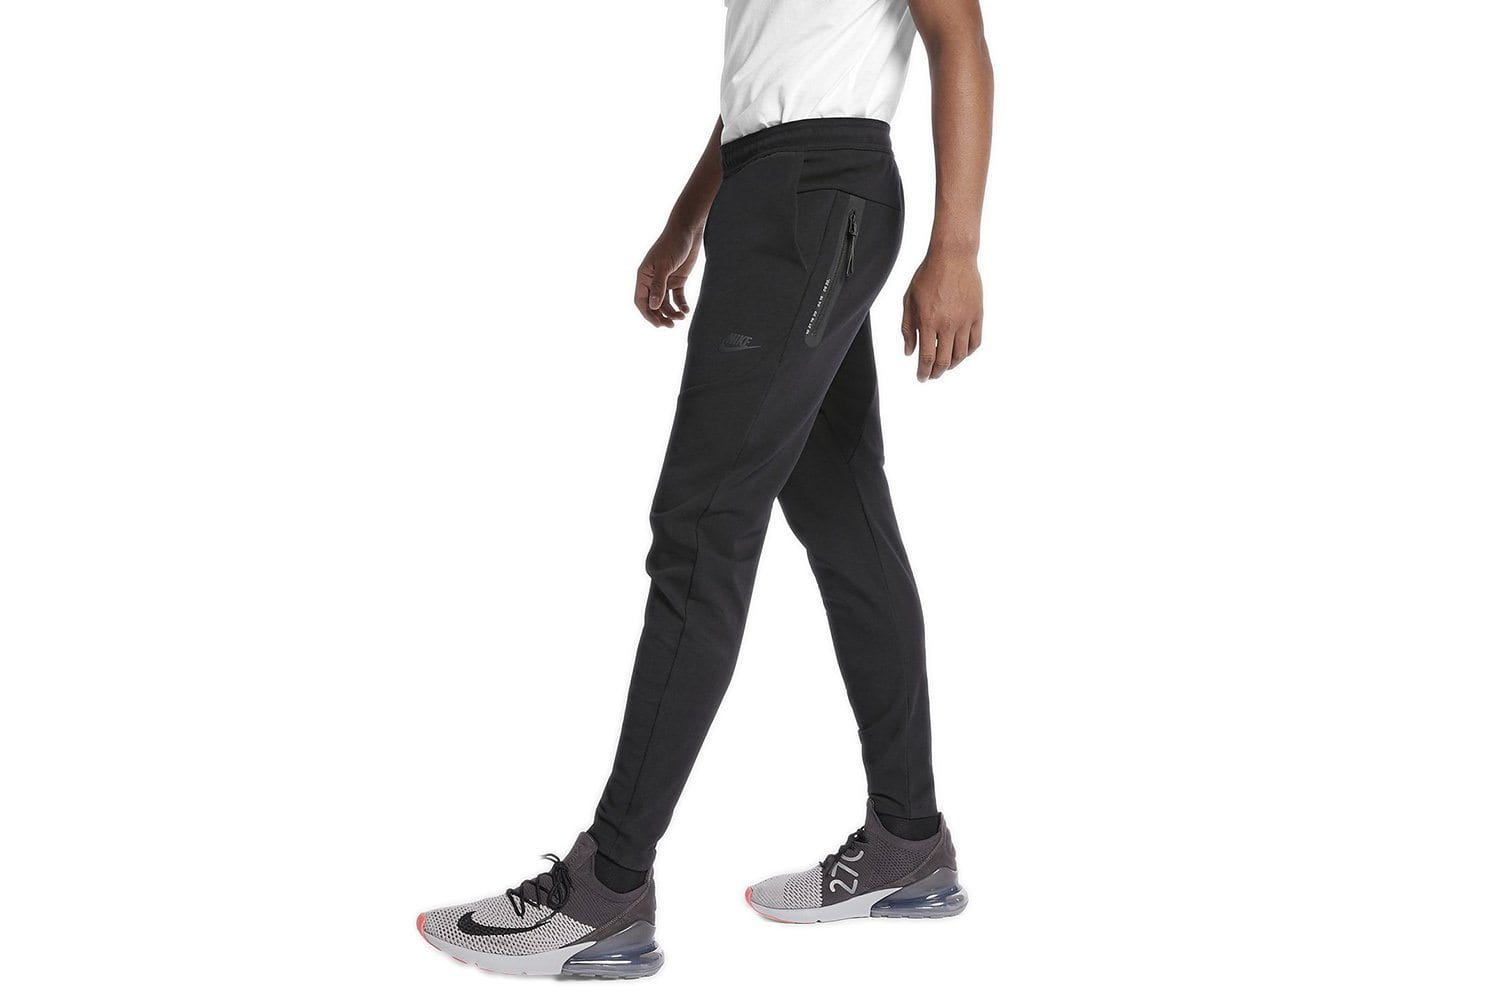 TECH PACK PANTS-928575-010 MENS SOFTGOODS NIKE